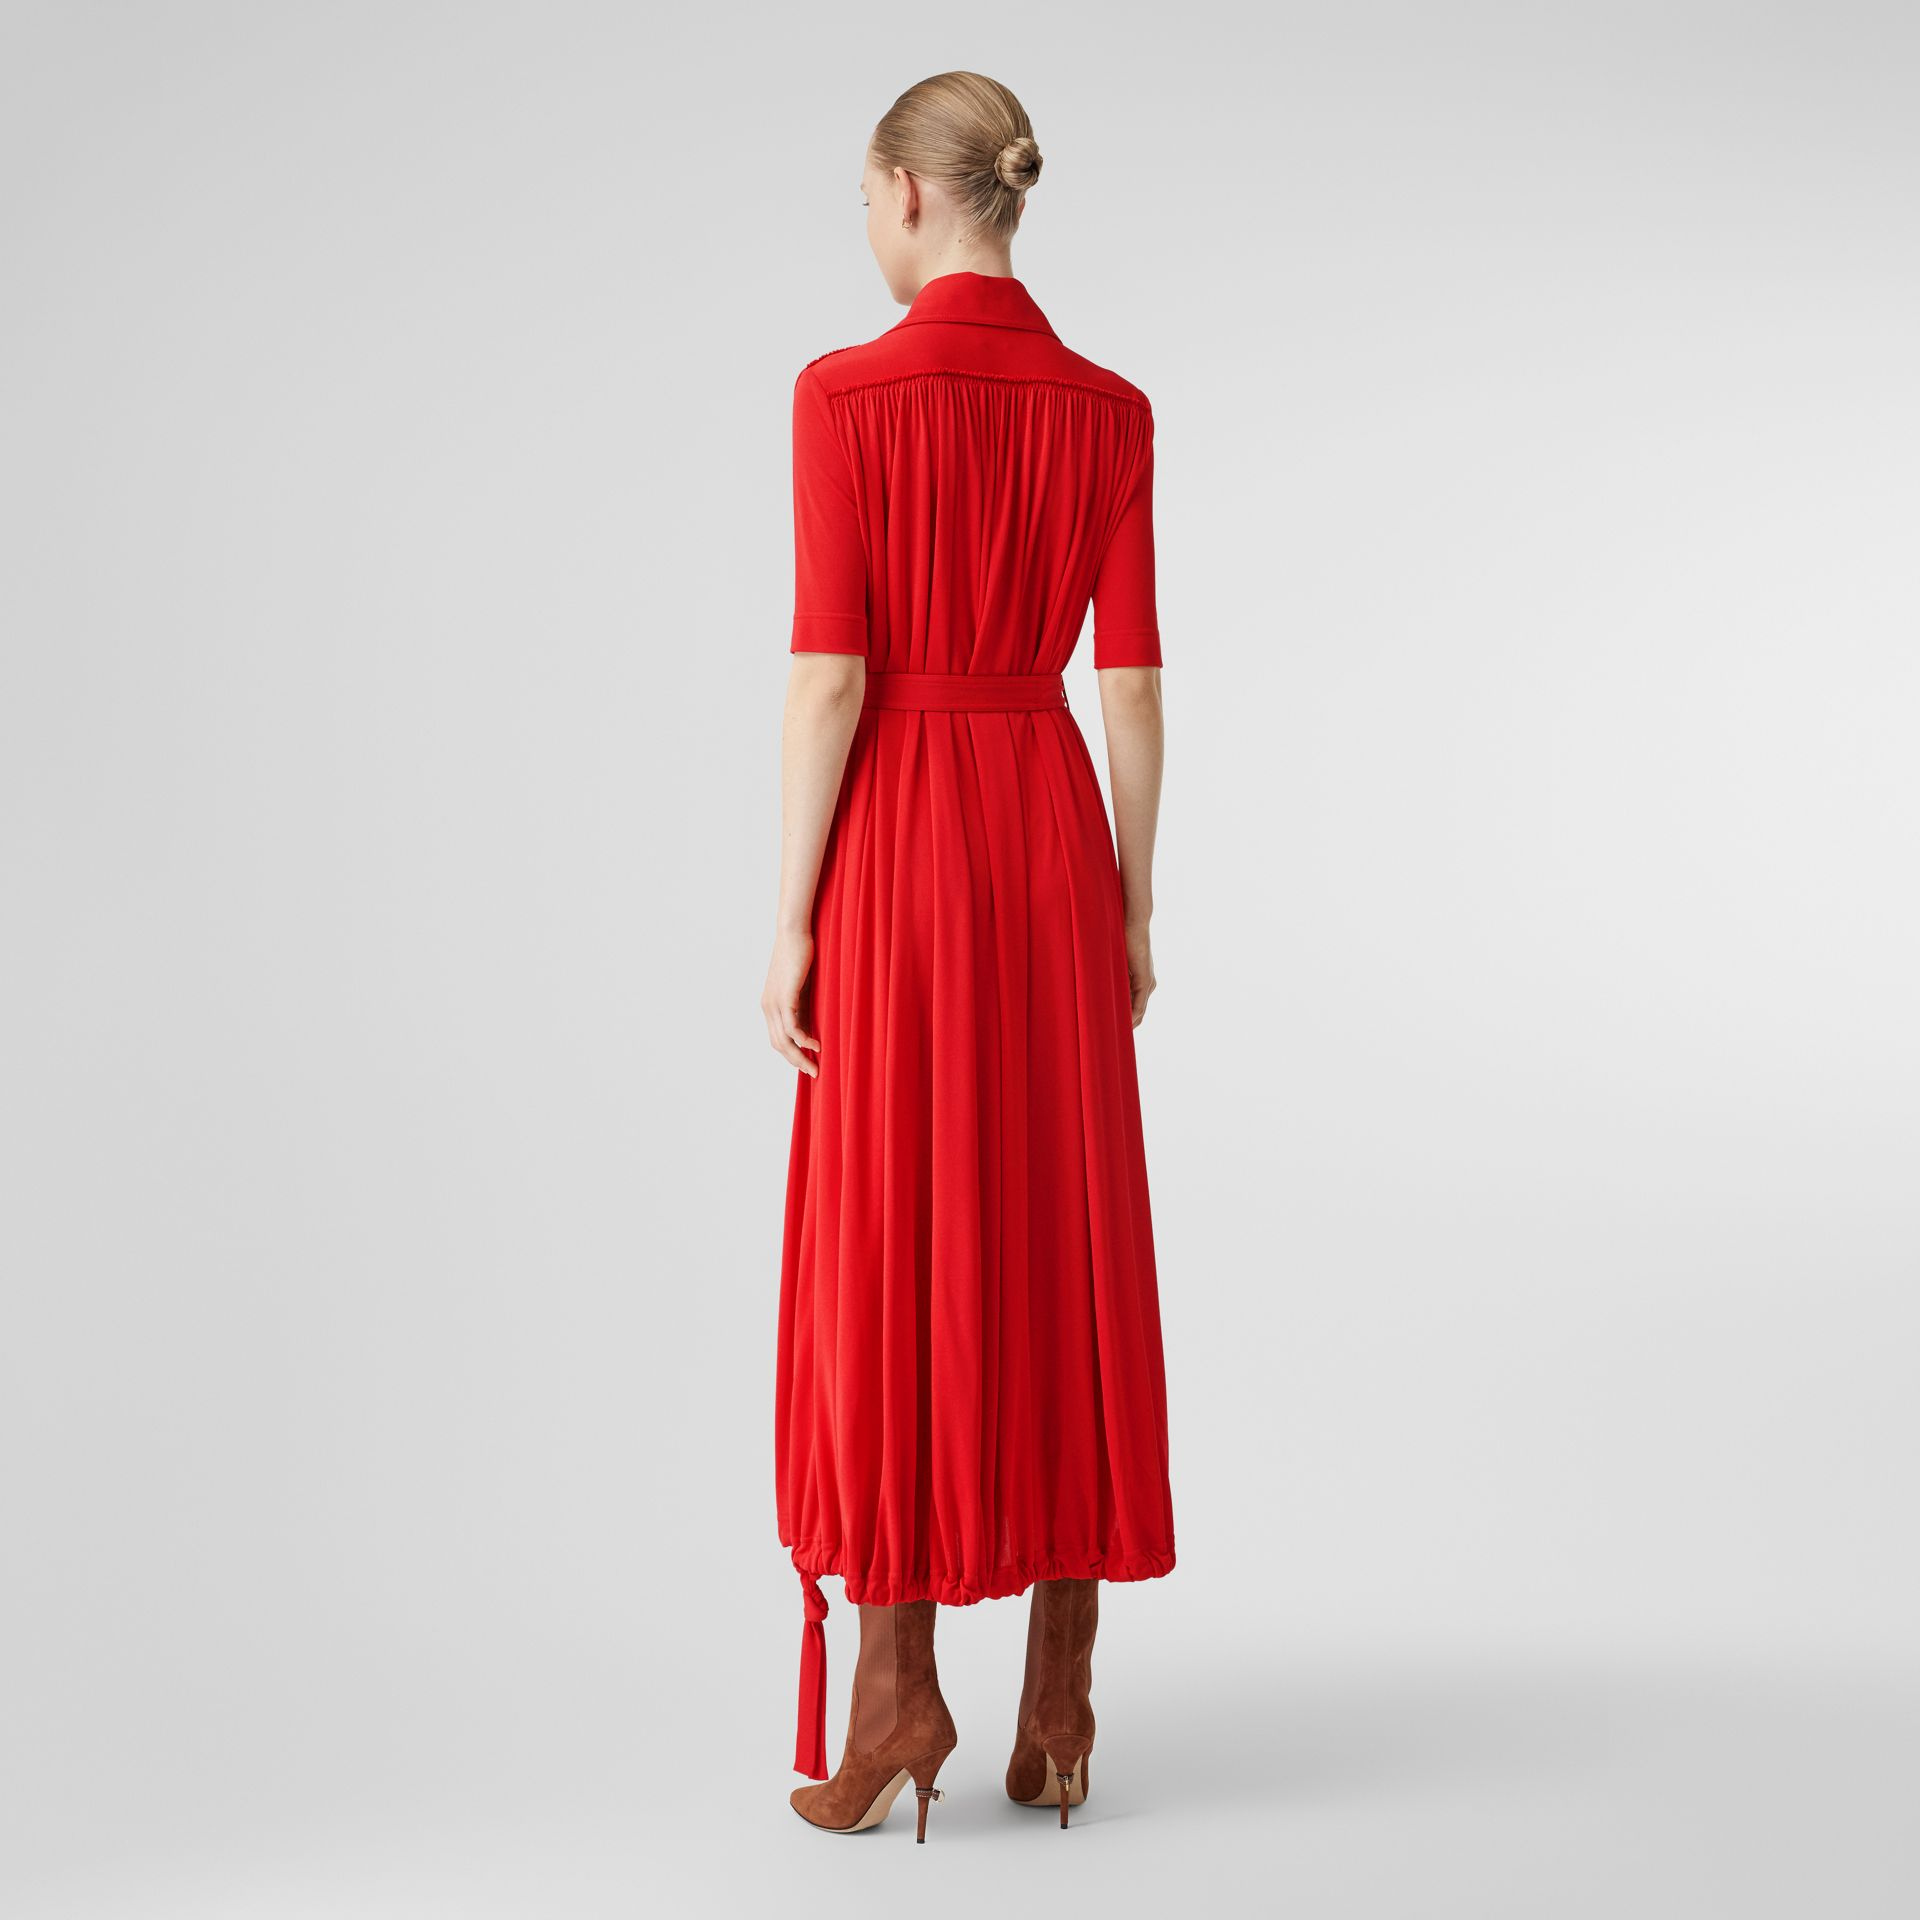 Short-sleeve Gathered Jersey Dress in Bright Red - Women | Burberry Canada - gallery image 2